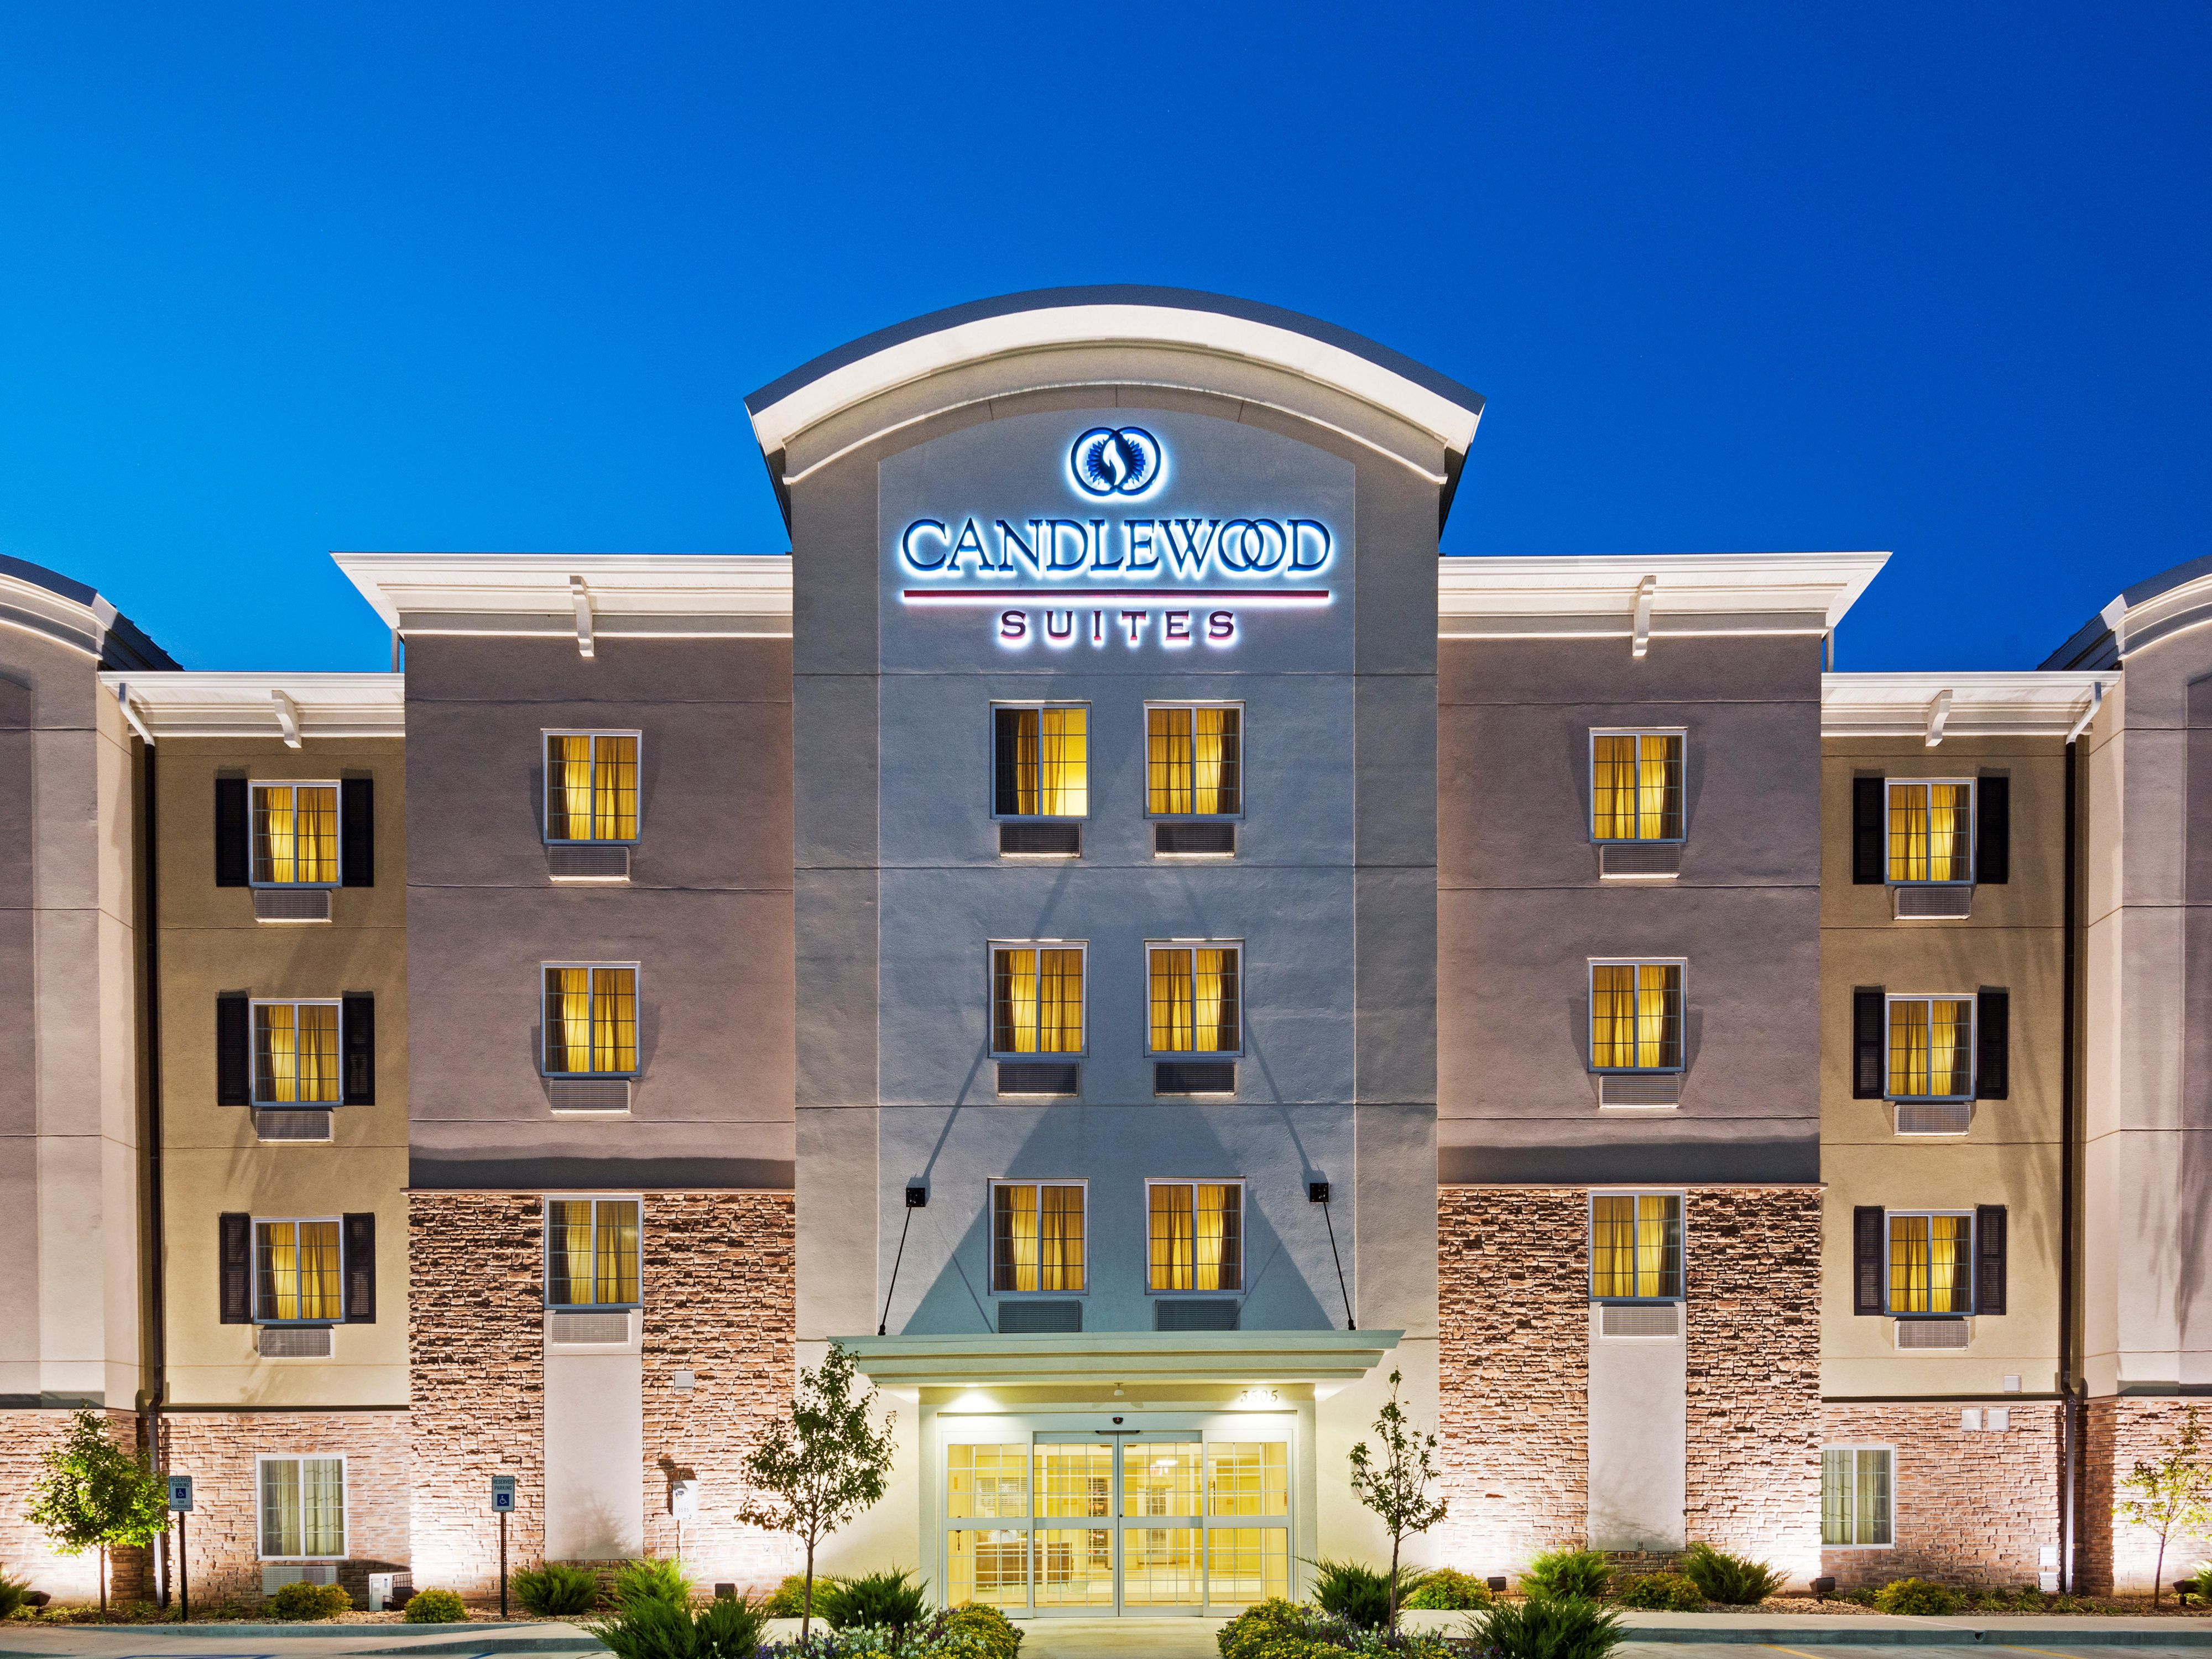 Baton Rouge Hotels Candlewood Suites College Drive Extended Stay Hotel In Louisiana